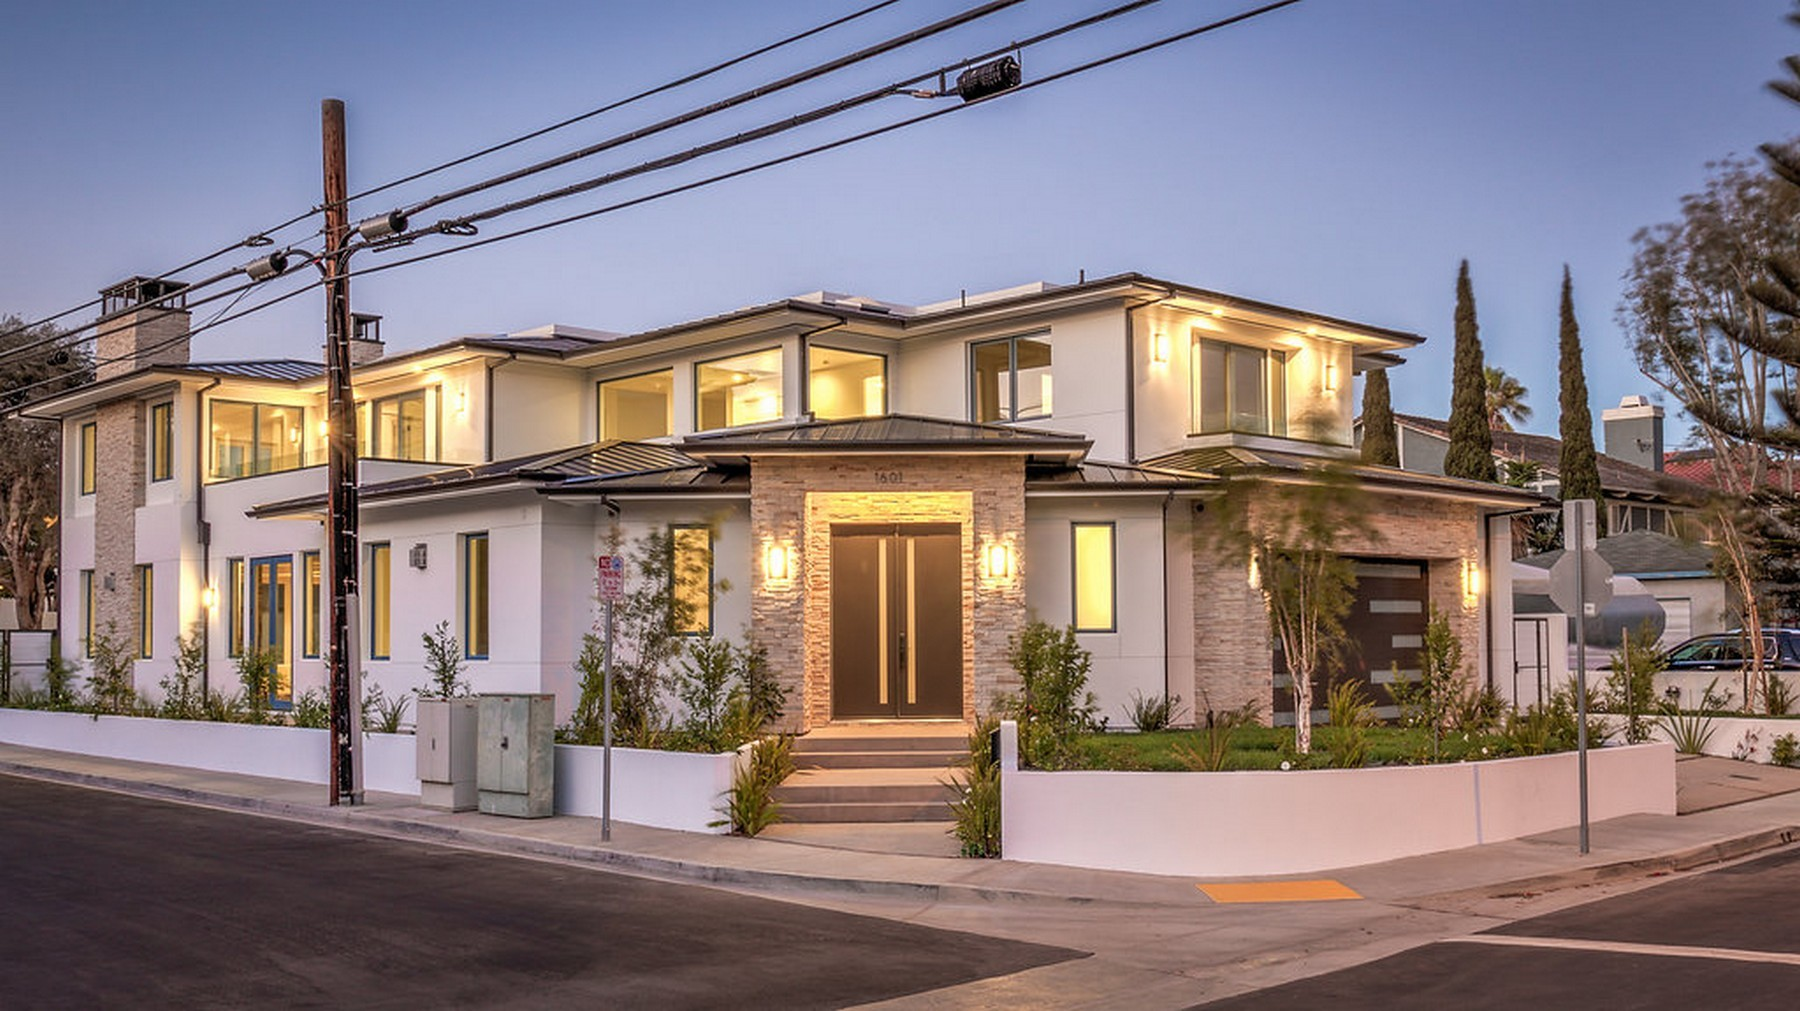 Single Family Home for Sale at 1601 Nelson Ave Manhattan Beach, California 90266 United States